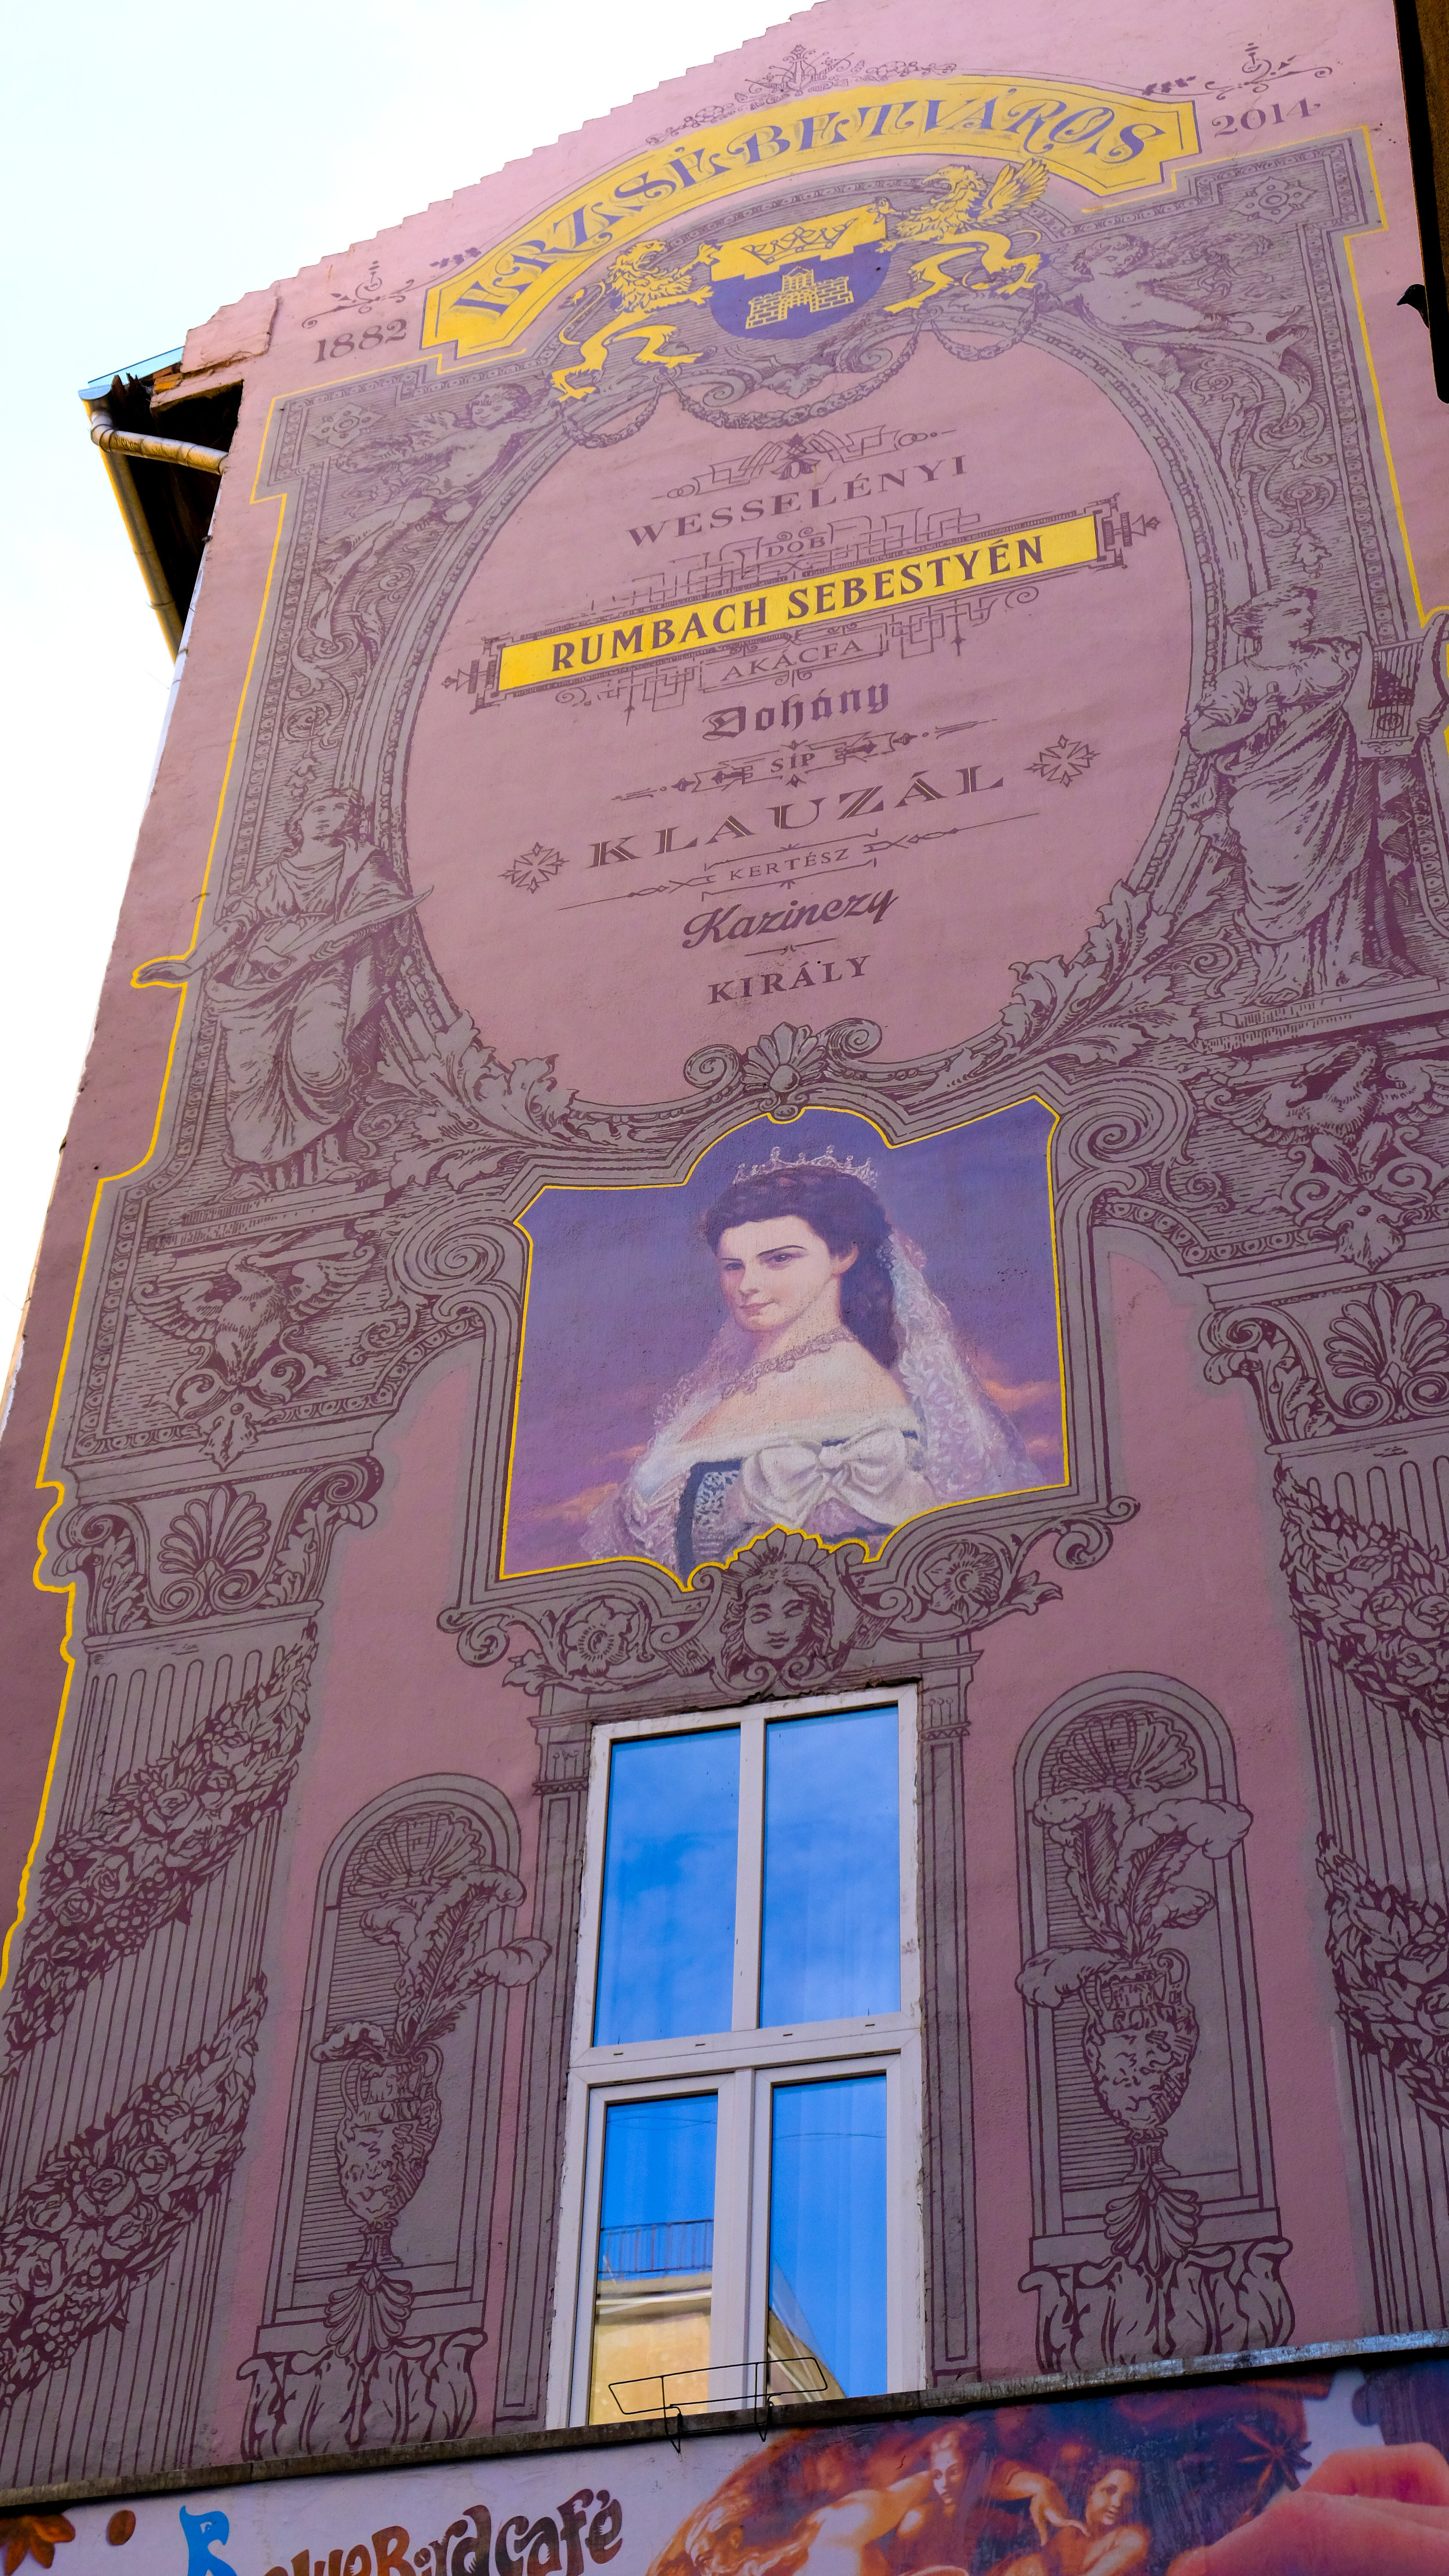 The woman in this mural on Rumbach Sebestyén Street is Elisabeth of Bavaria, the wife   of Franz Joseph I, Emperor of Austria and King of Hungary.  There is an entire section of the city named after her, Erzsebetvaros (Elizabeth Town).